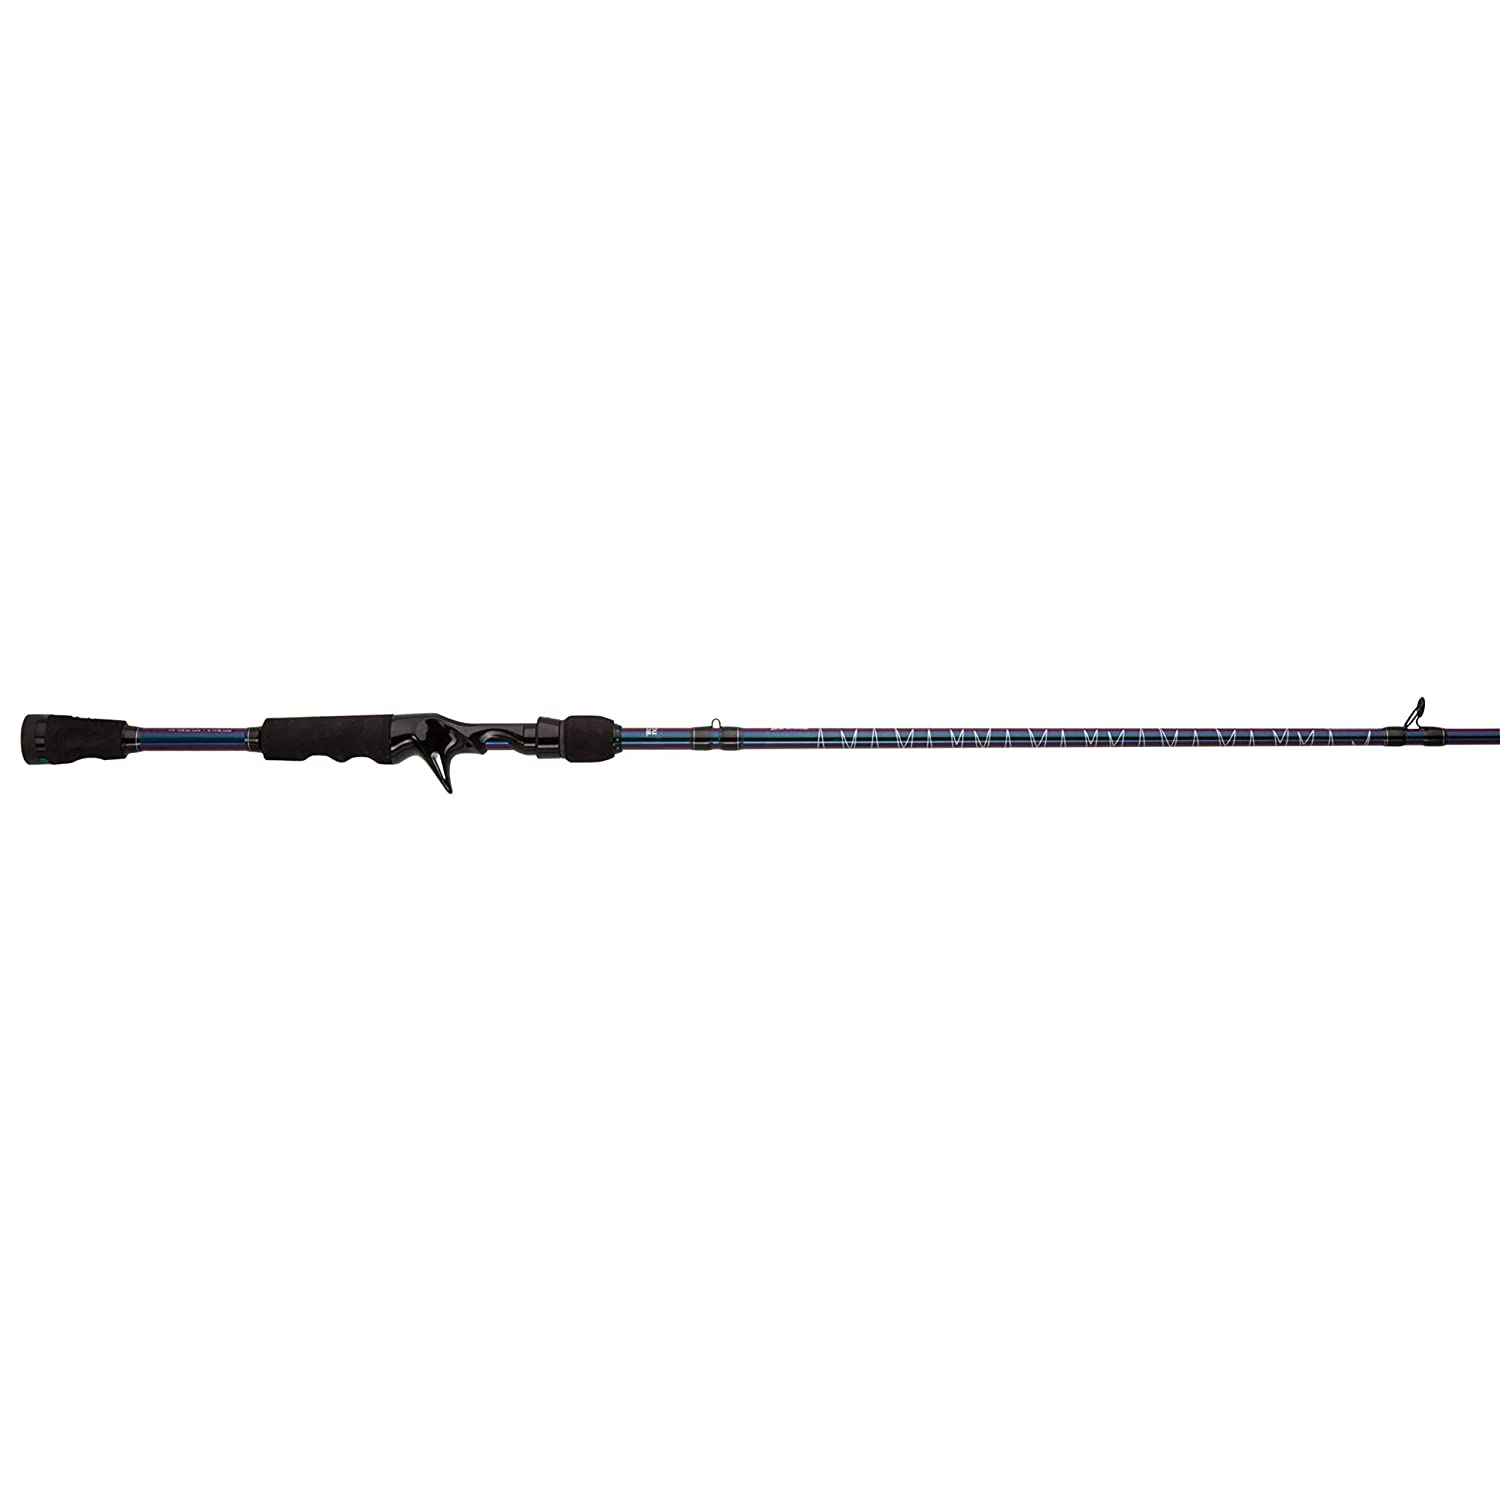 Abu Garcia IKE Signature Delay Casting Fishing Rod